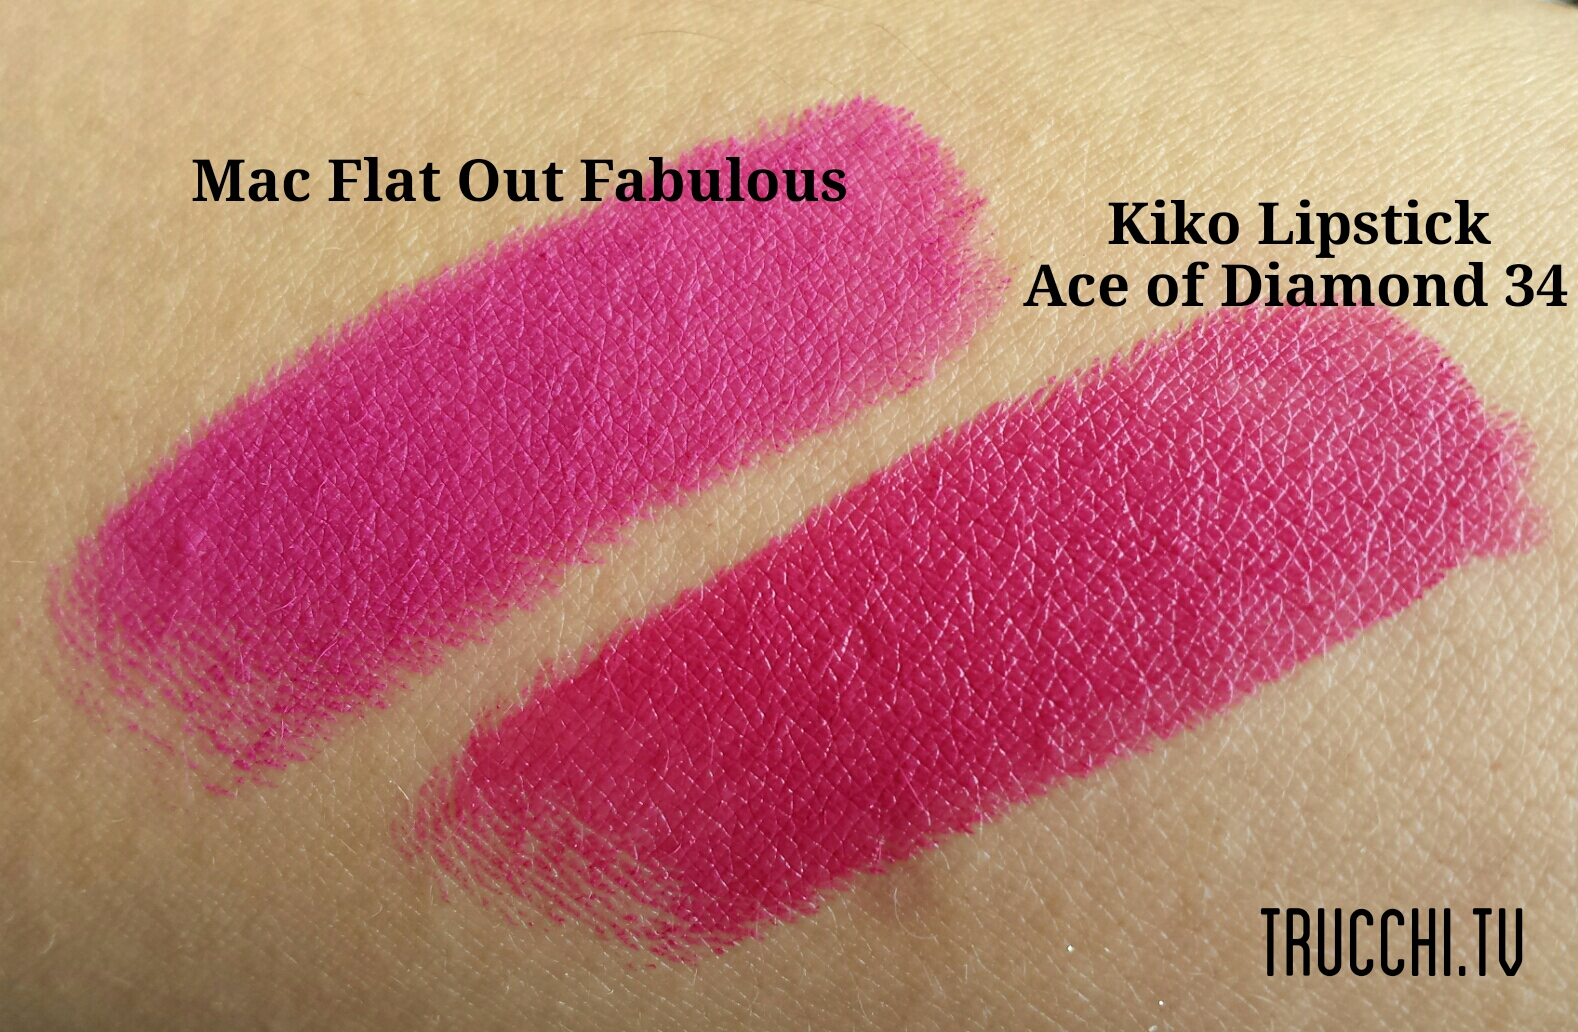 kiko makeup swatches daring game lipsticks